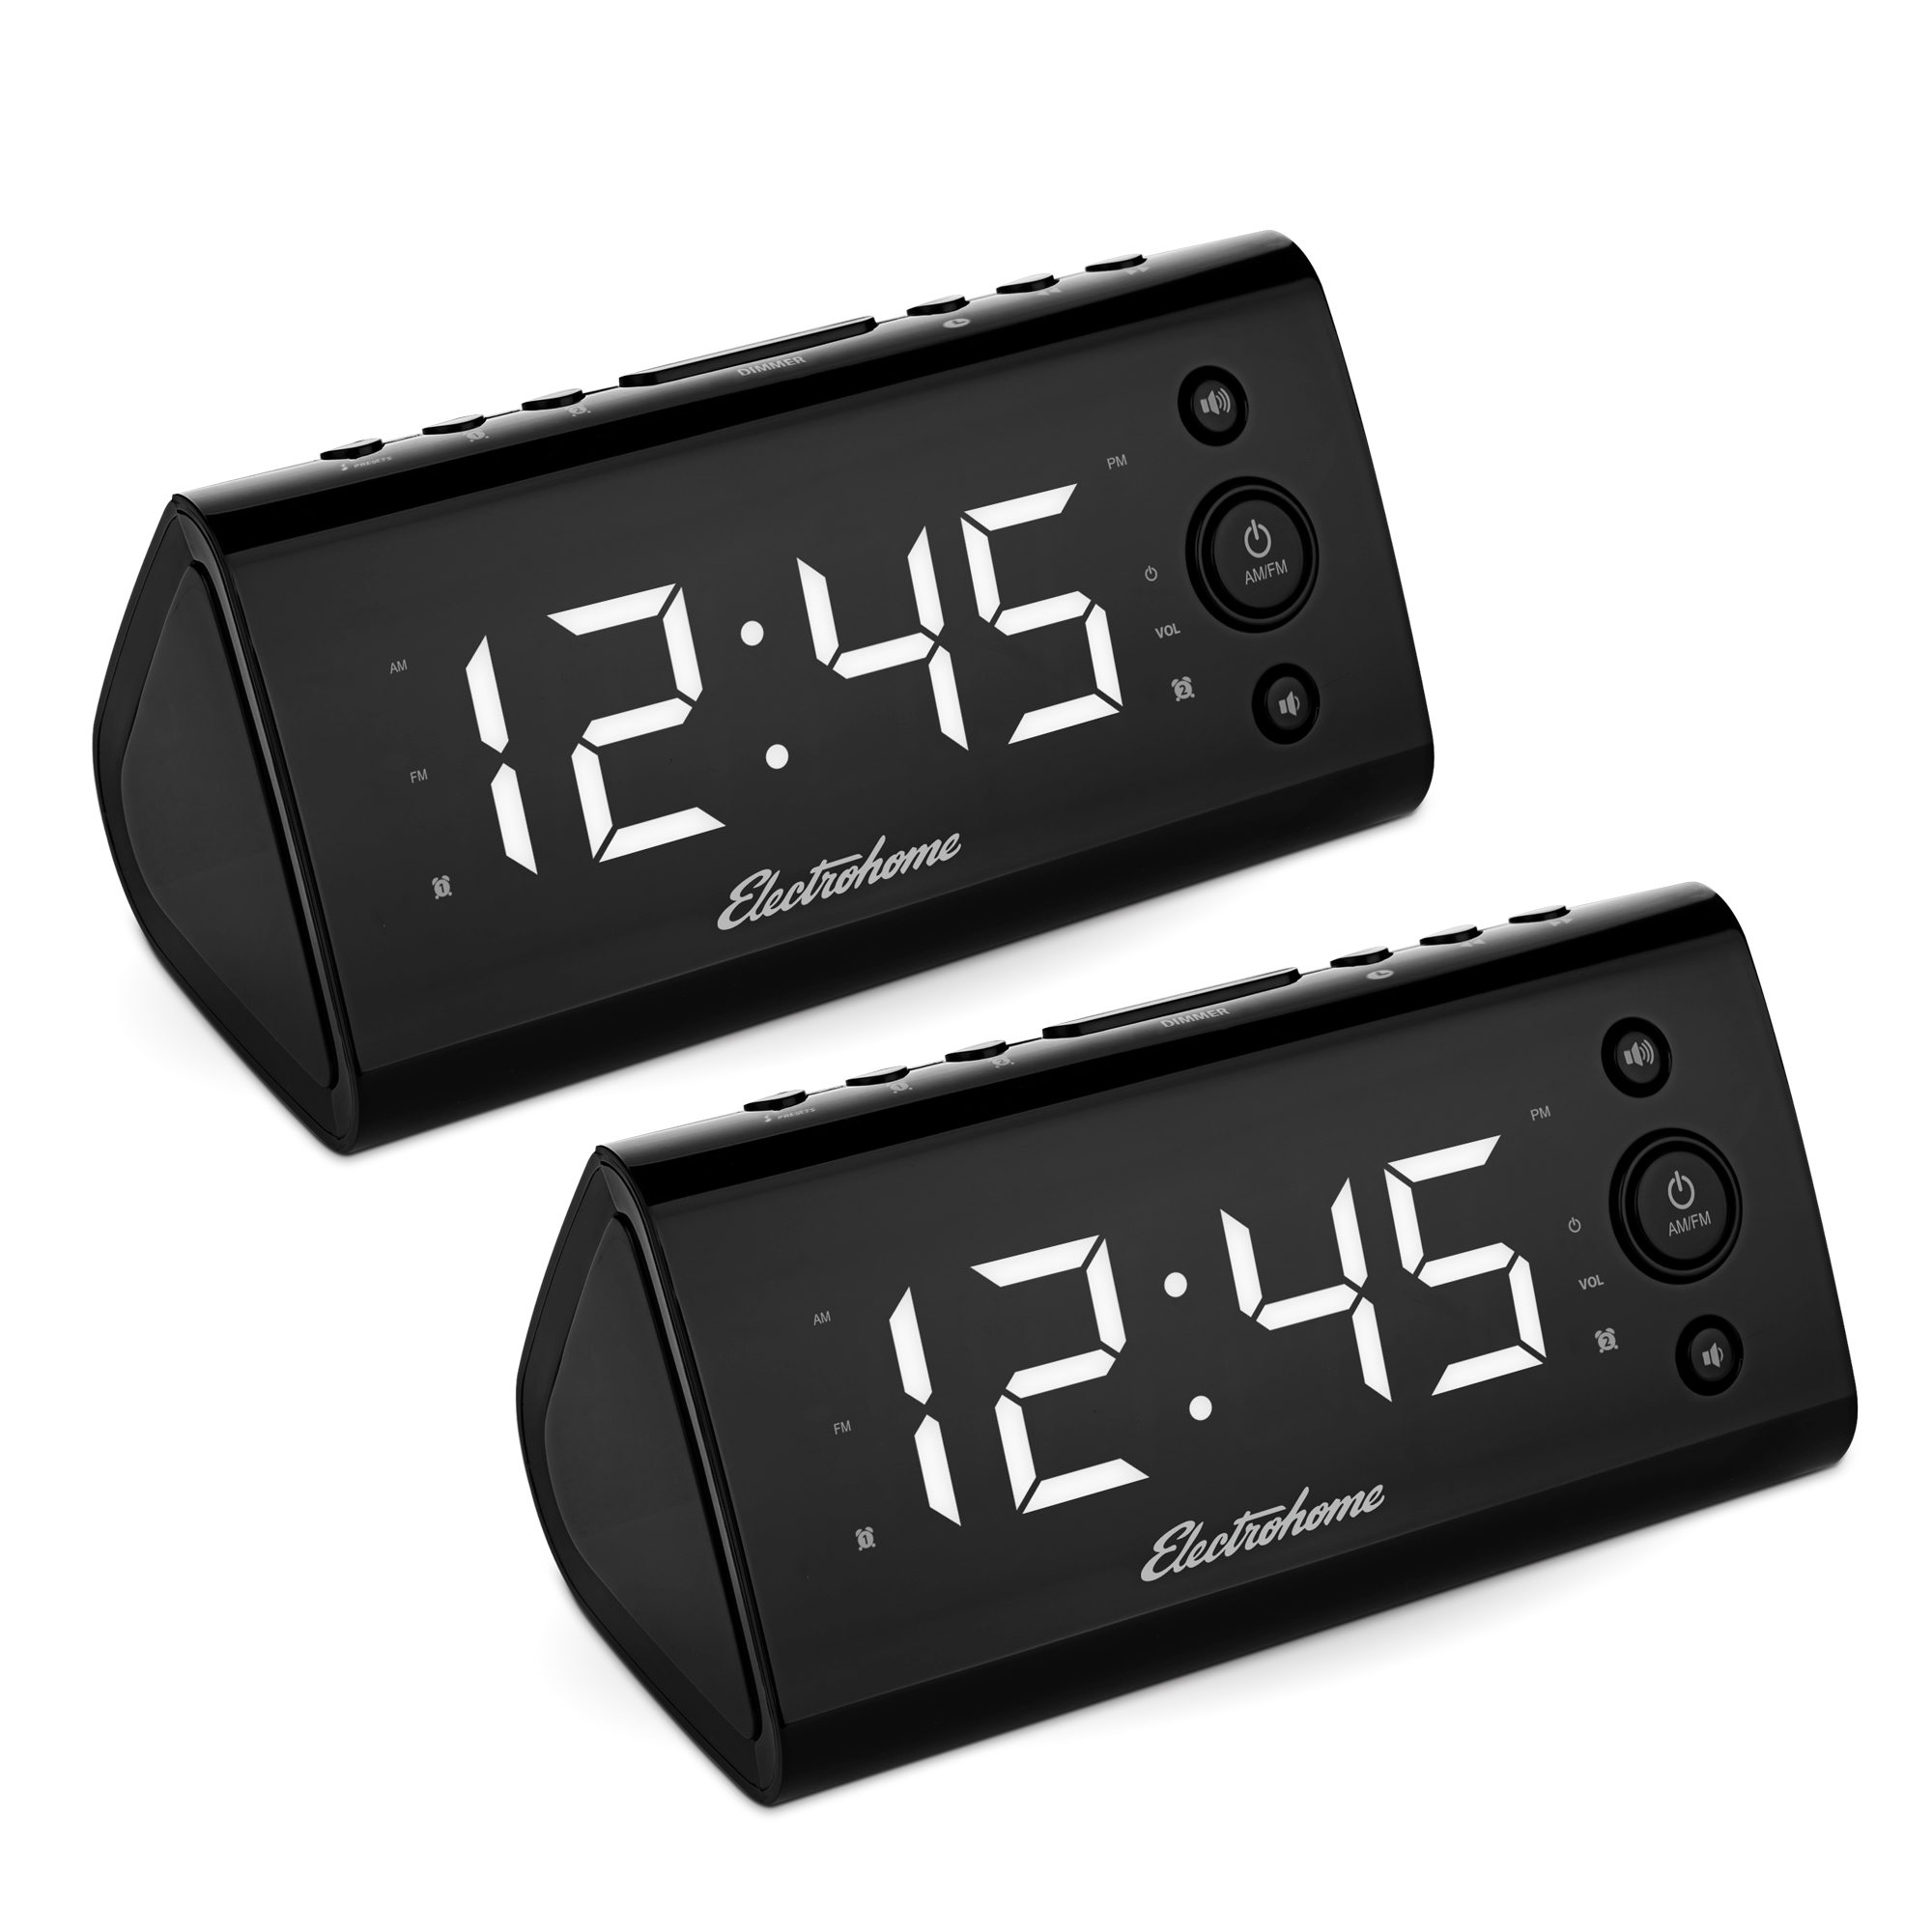 """Electrohome Alarm Clock Radio with USB Charging for Smartphones & Tablets includes Dual Alarm, Battery Backup, Auto Time Set & 1.2"""" LED Display with 4 Dimming Options - 2 PACK"""